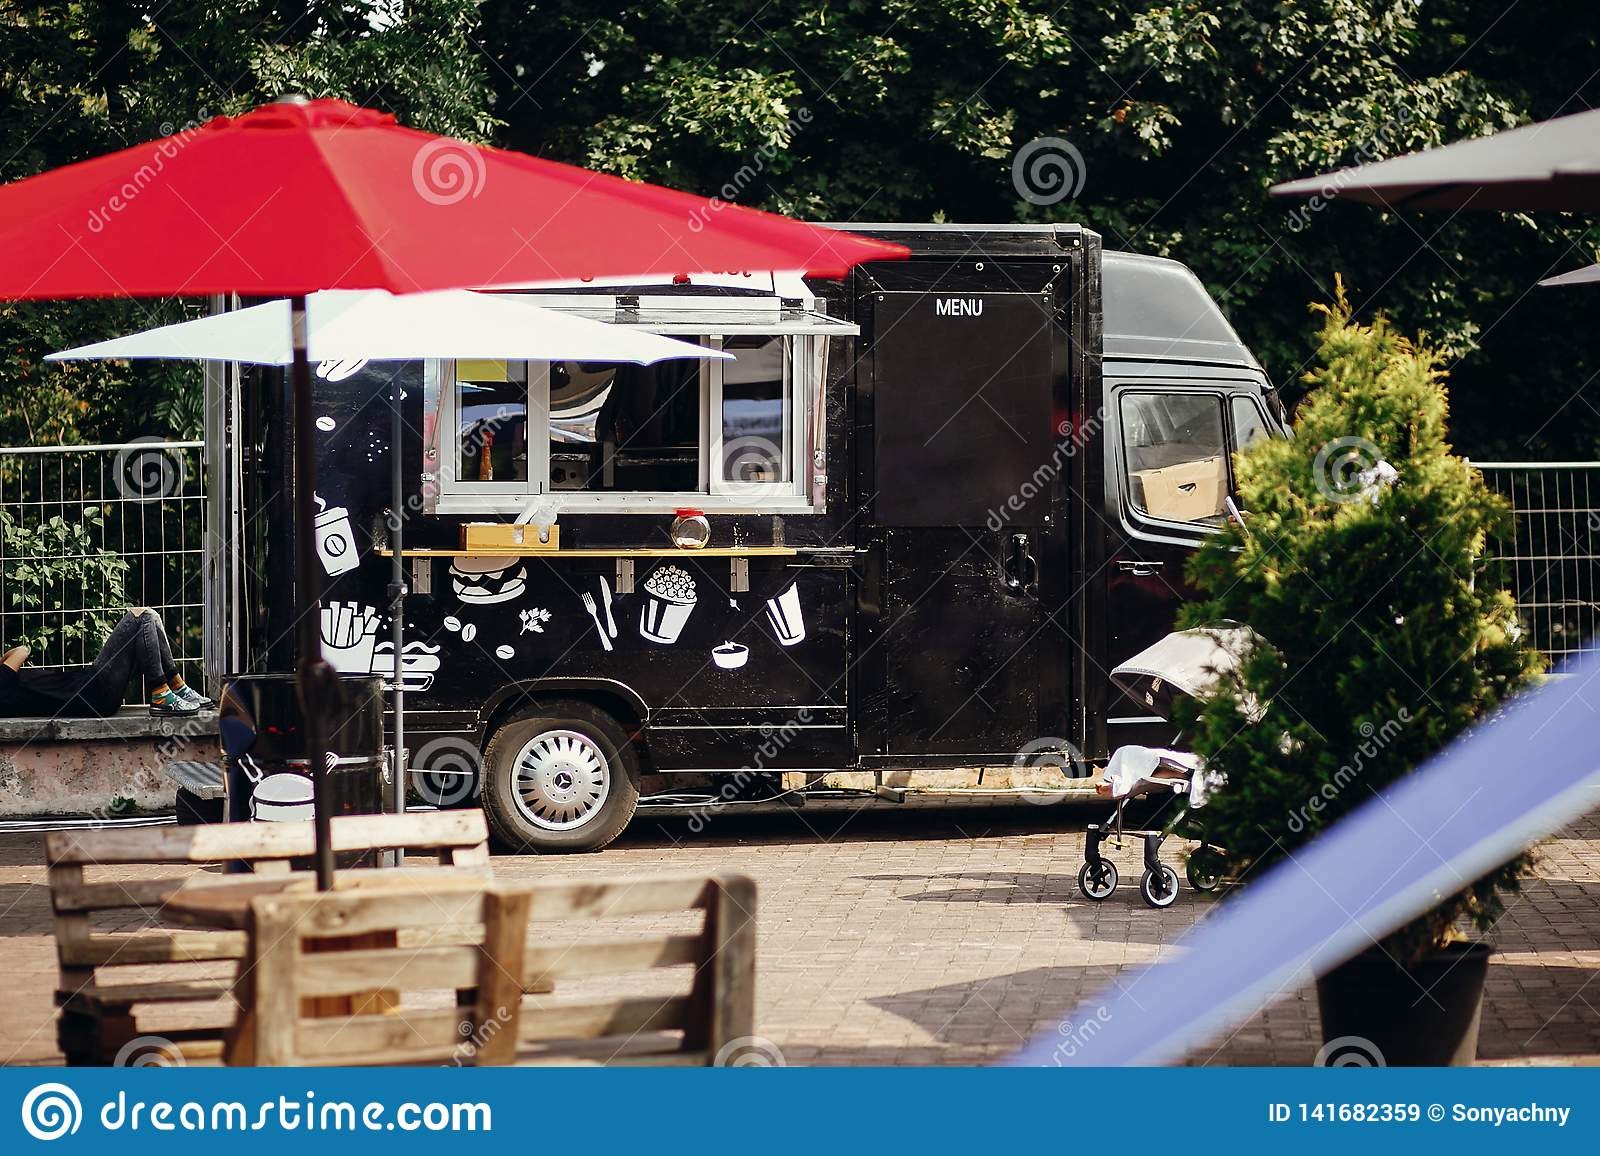 Food van truck. Stylish black mobile food truck with burgers and asian food at street food festival. Summer eating market in the